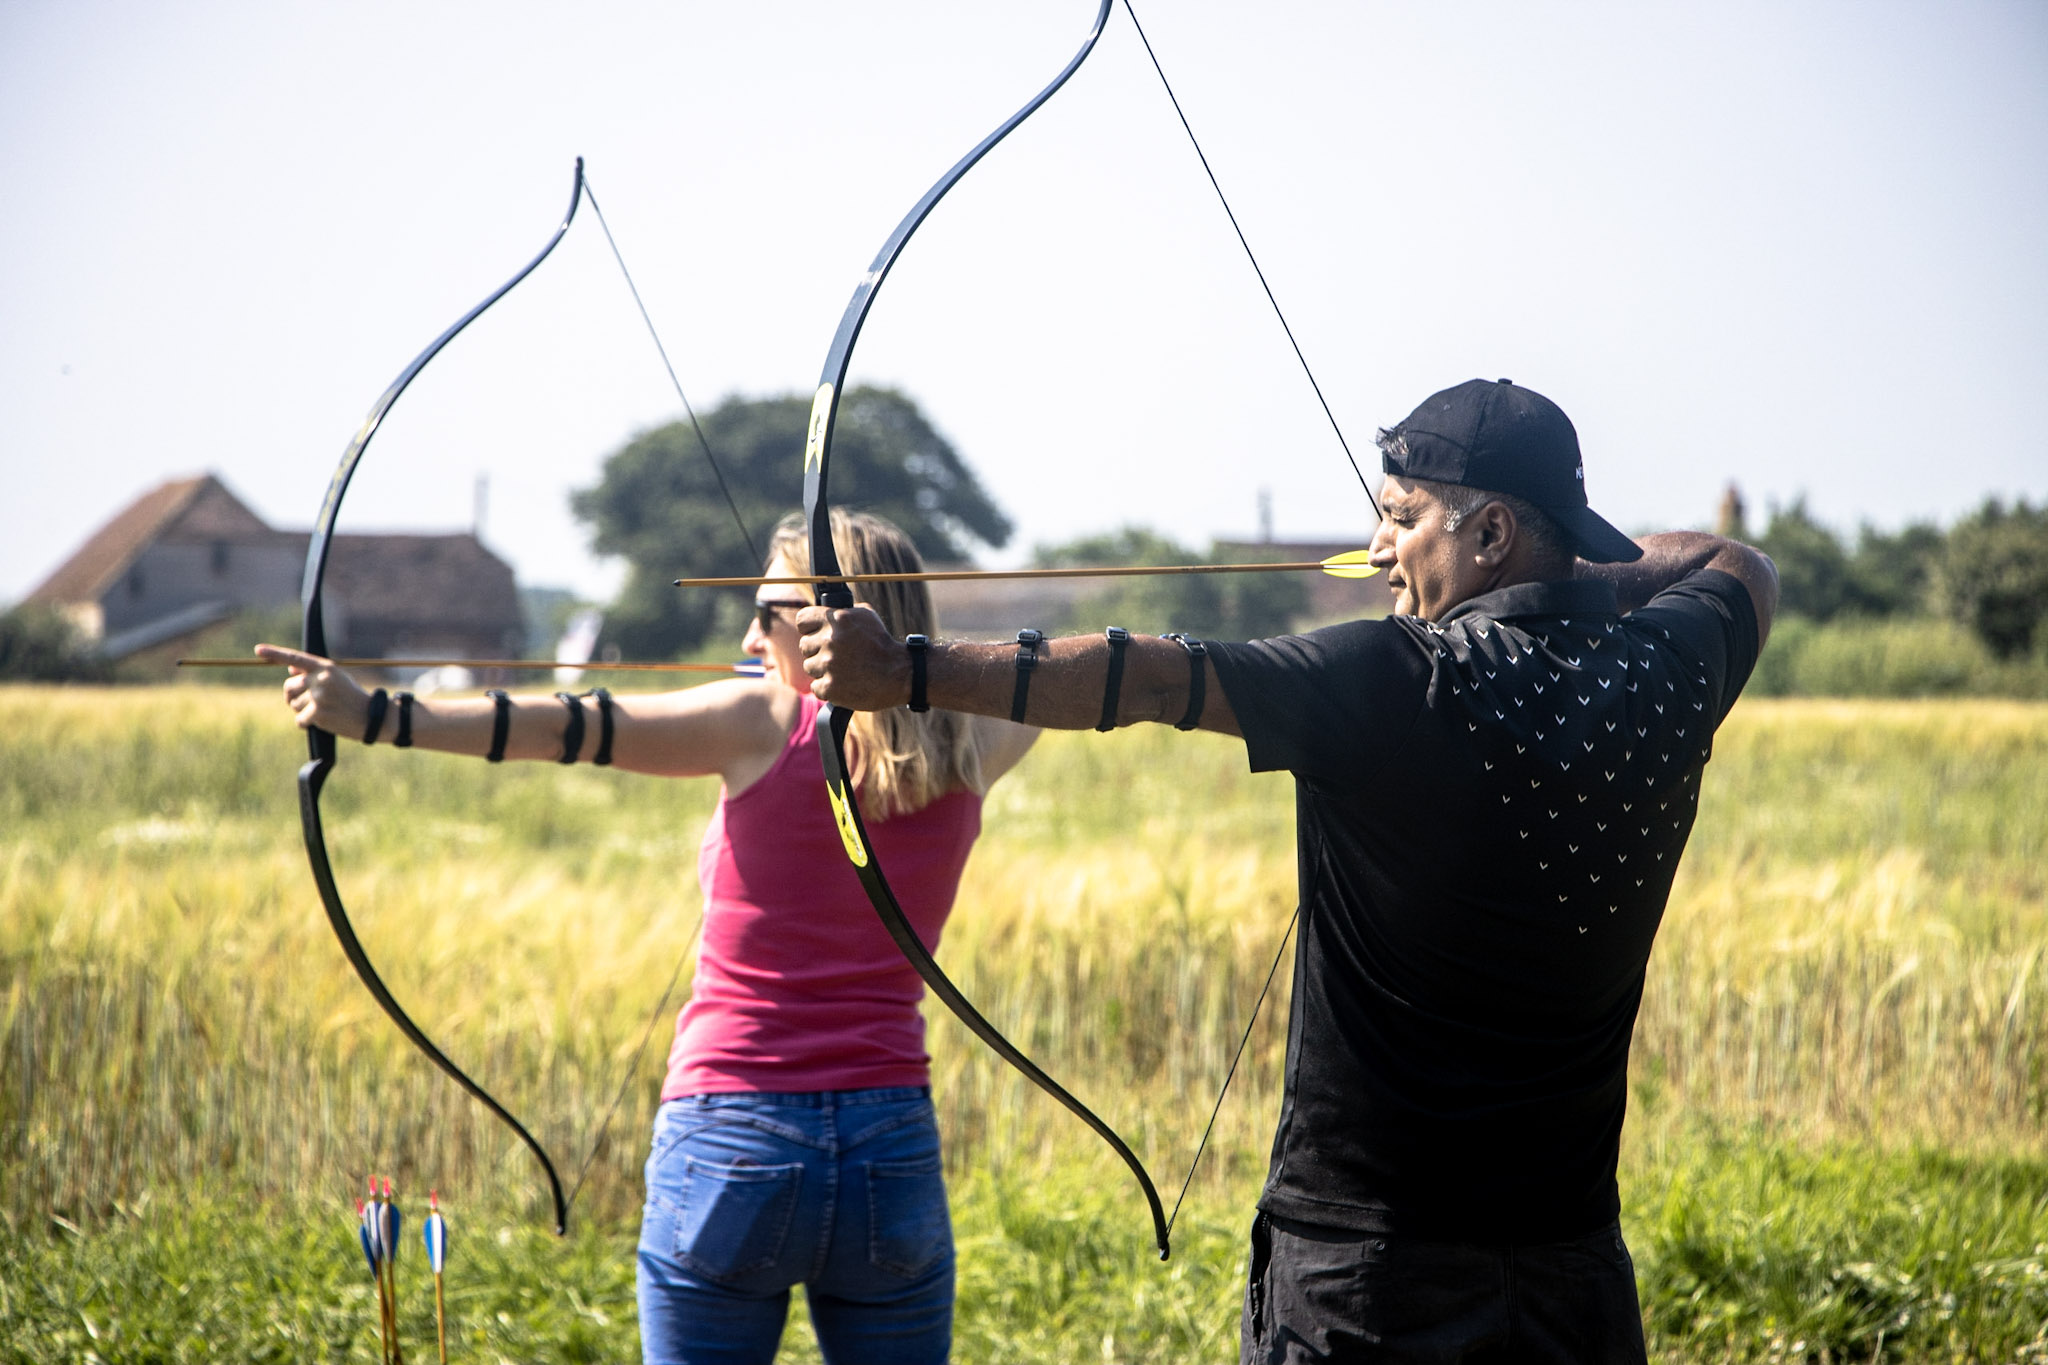 Fun activities for couples in The New Forest, including archery.